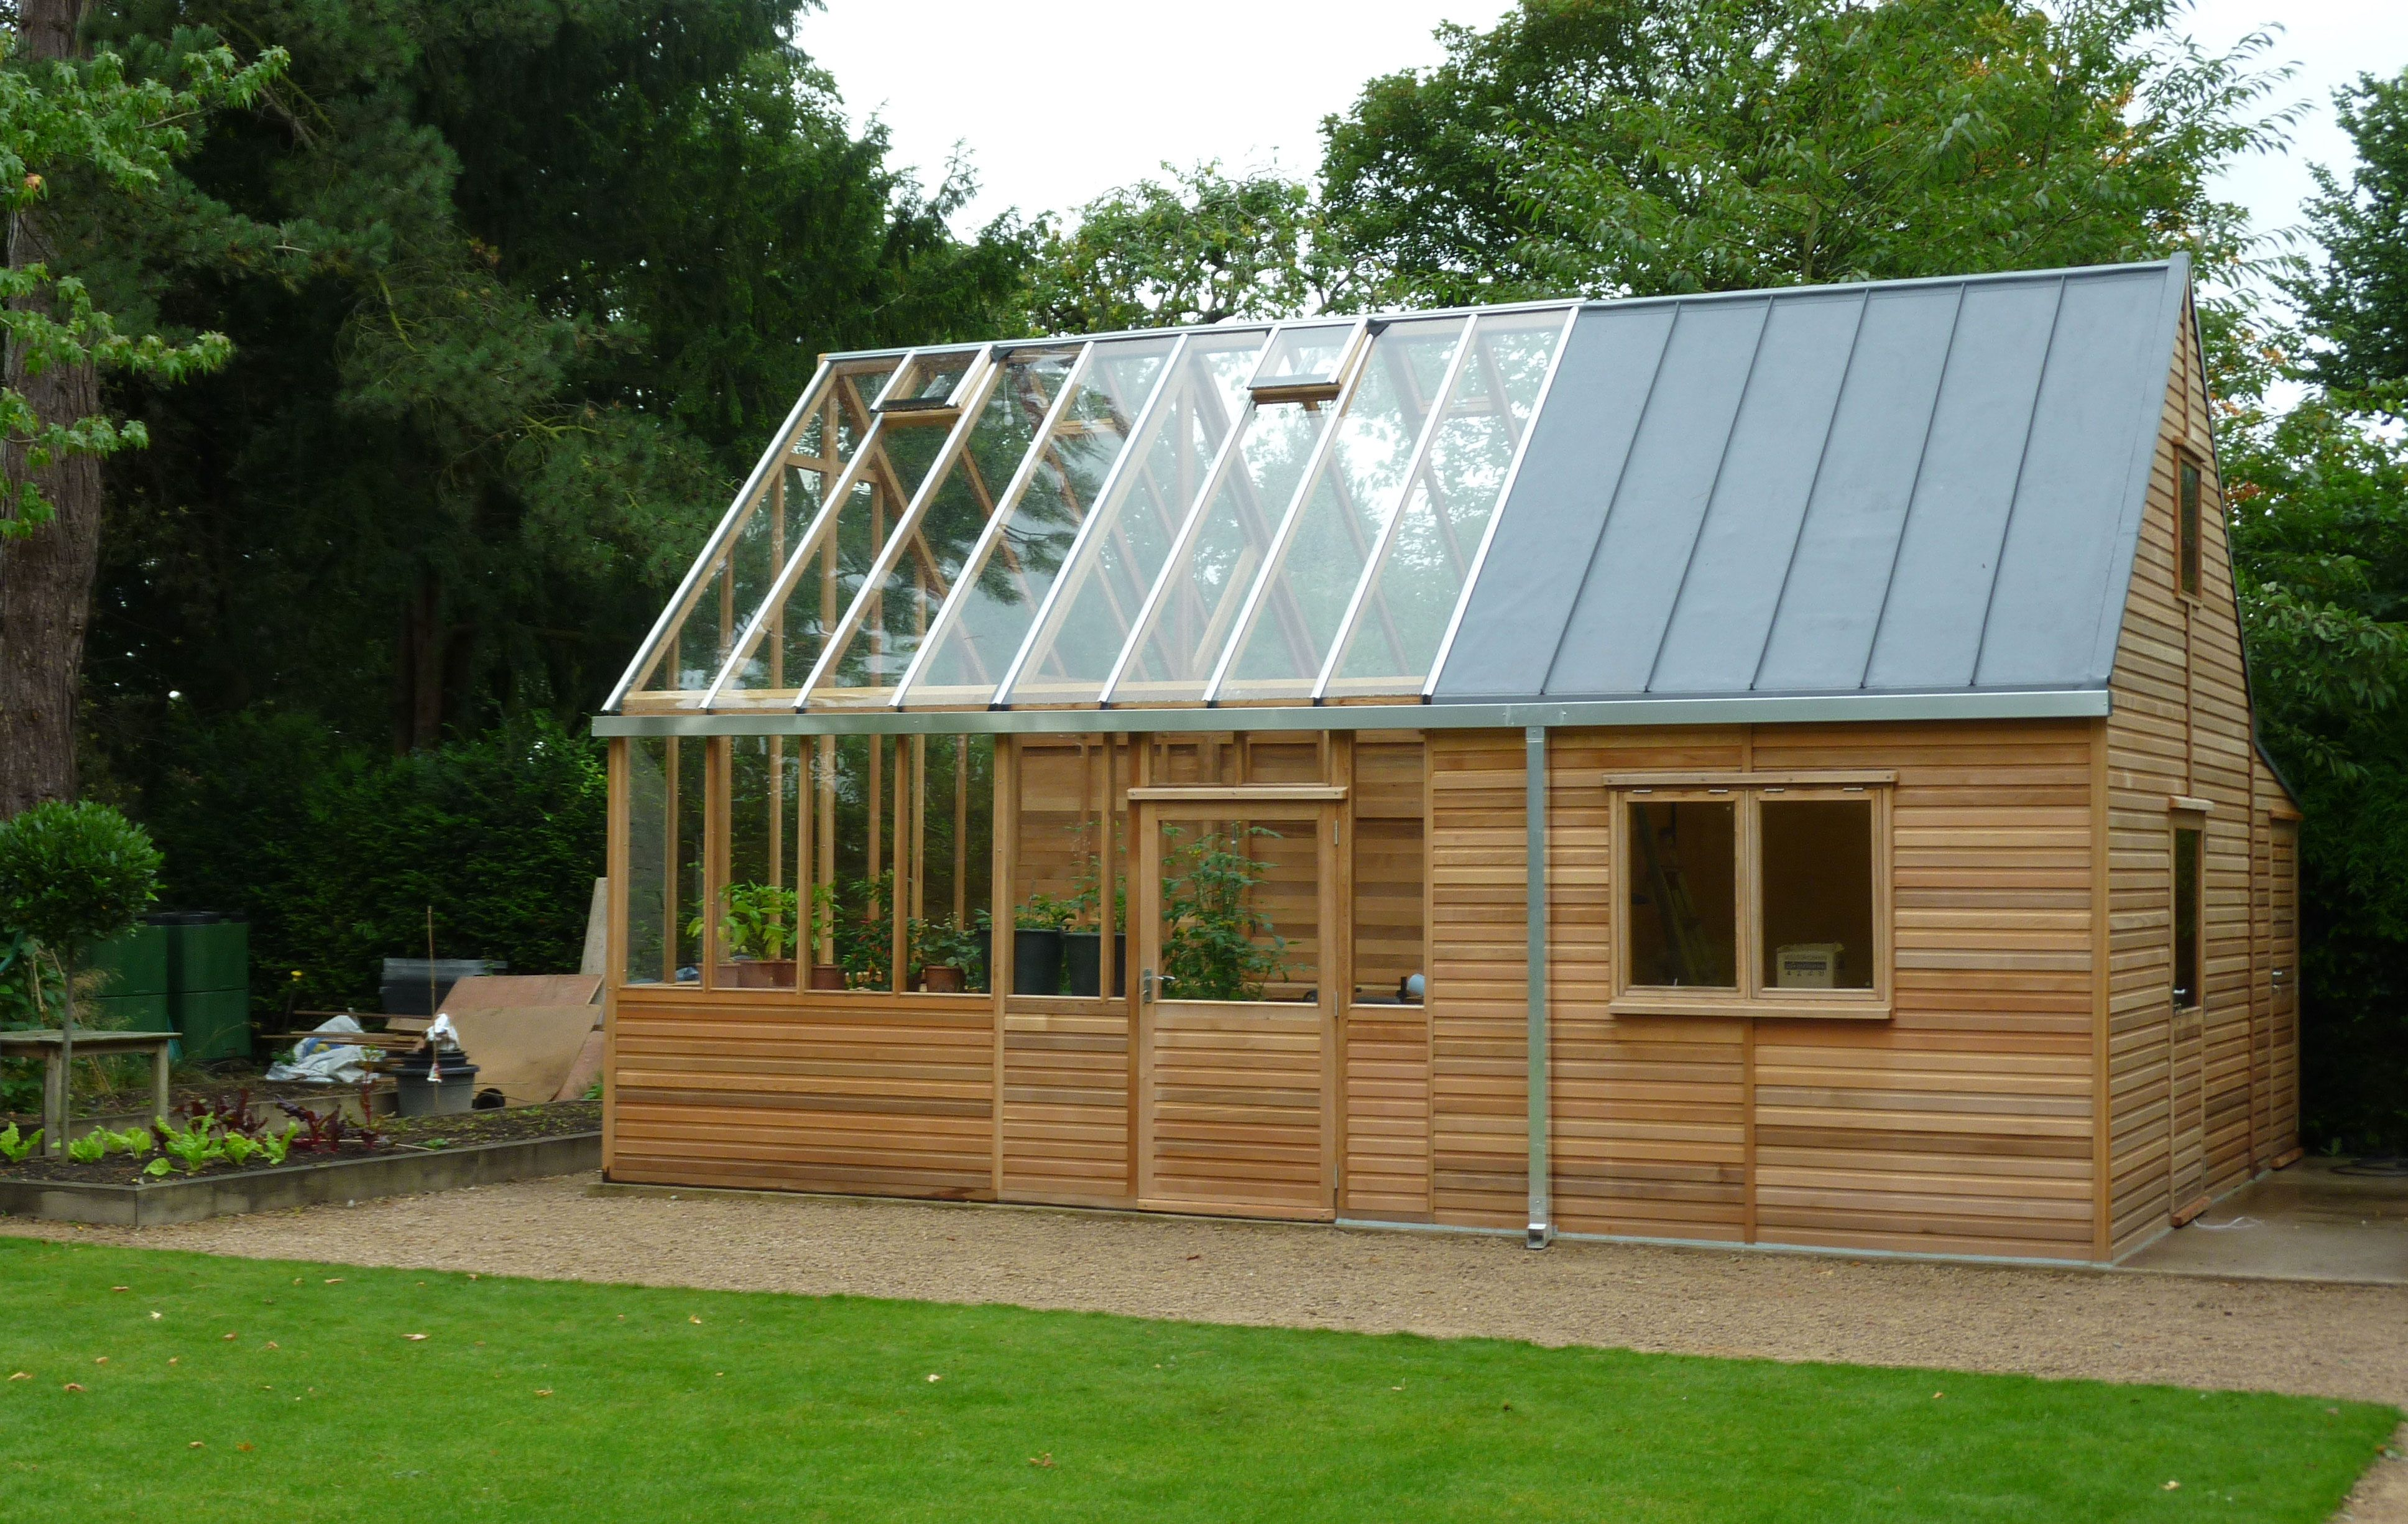 kings bromley greenhouse and garden shed - Garden Sheds With Greenhouse